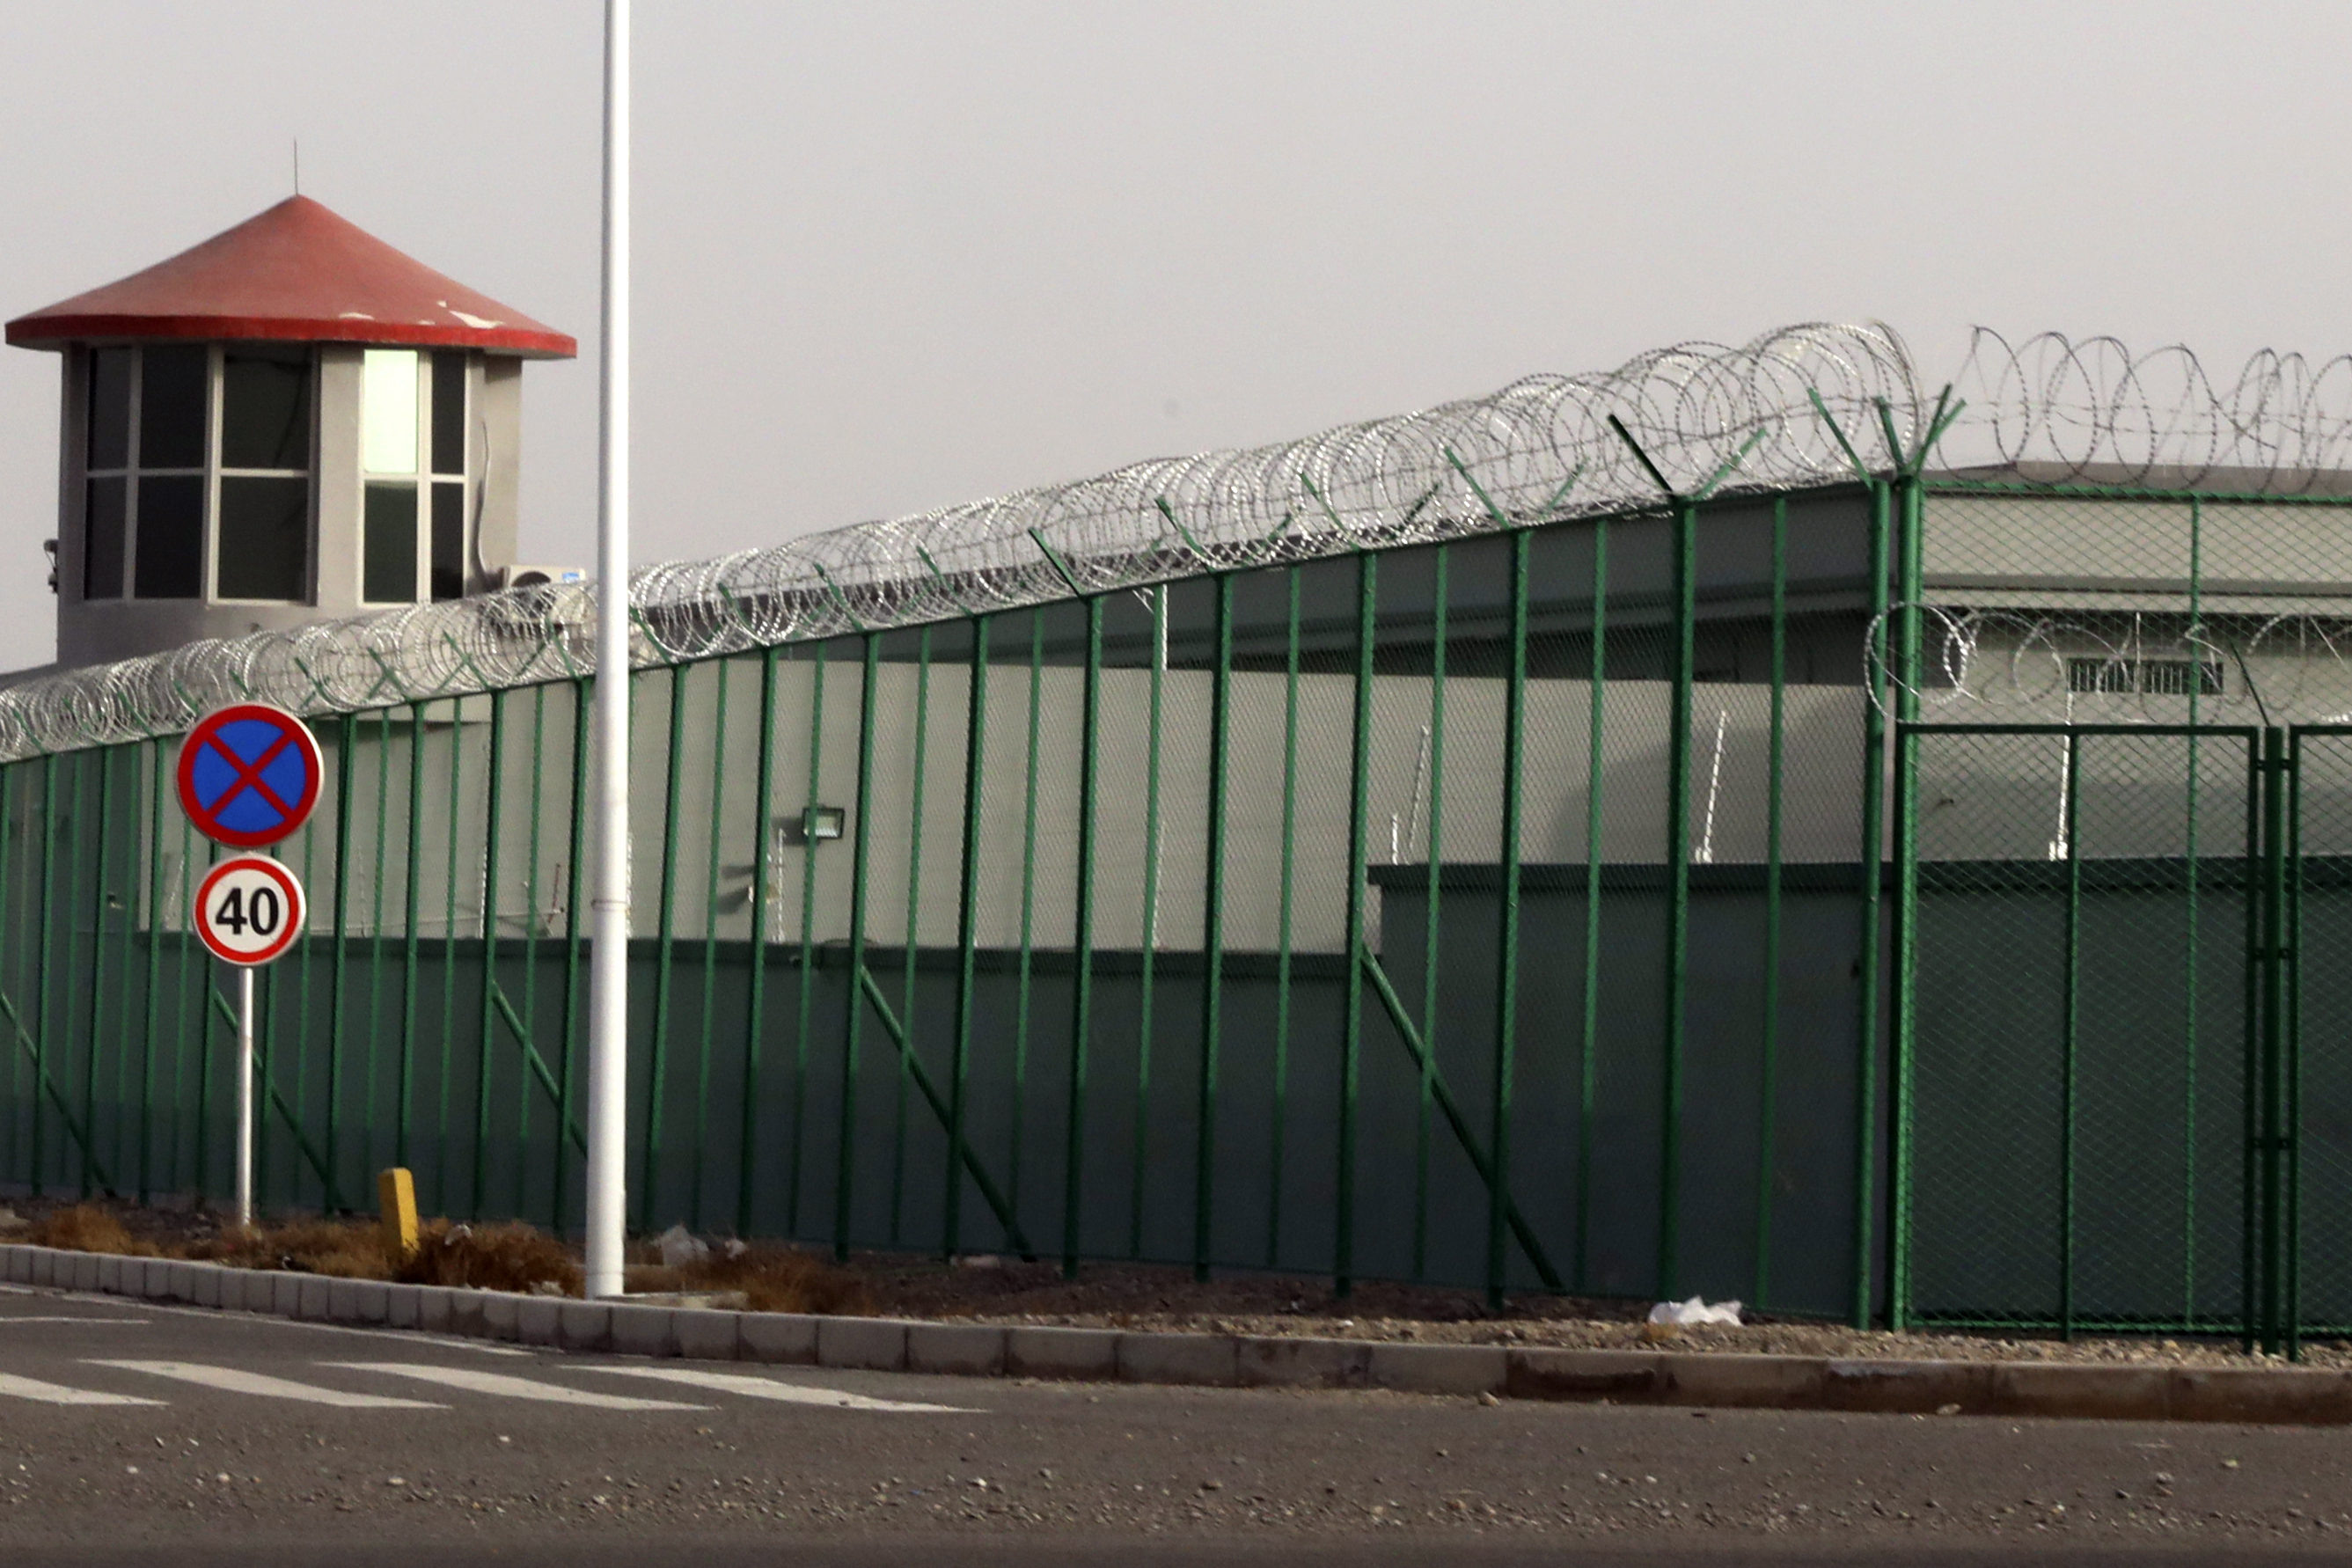 Ancient Chine Torture Porn secret documents reveal how china's mass detention camps